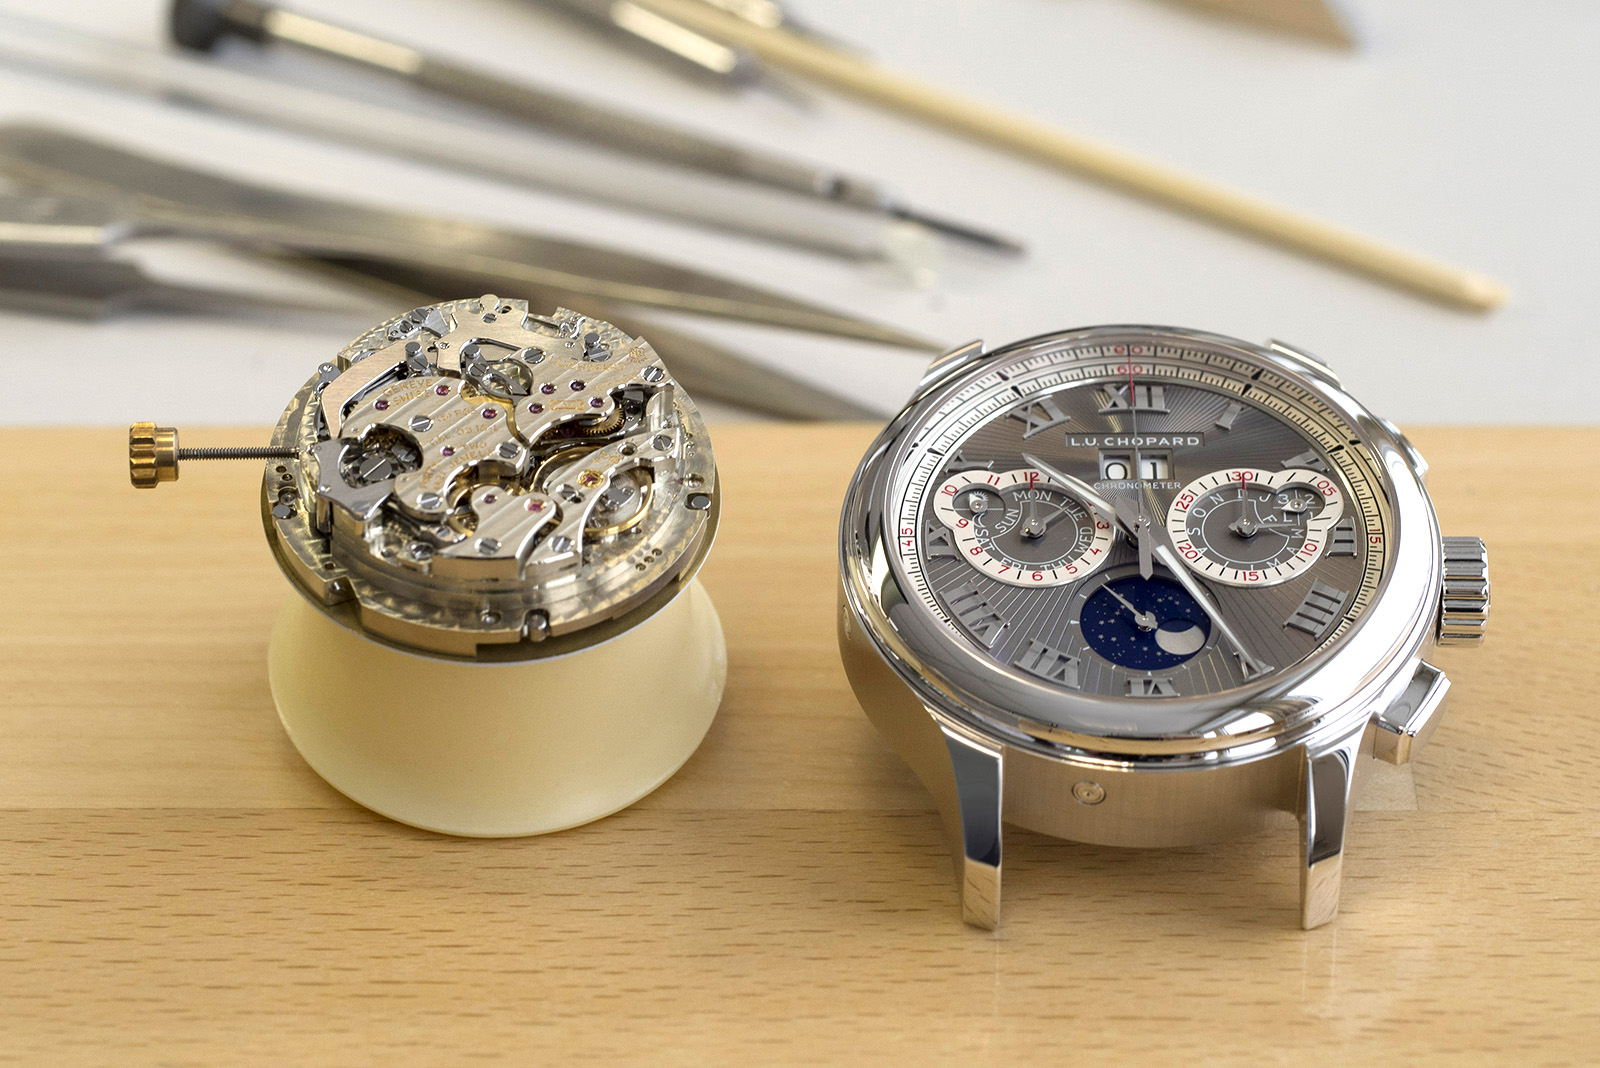 Chopard Manufacture - emboitage